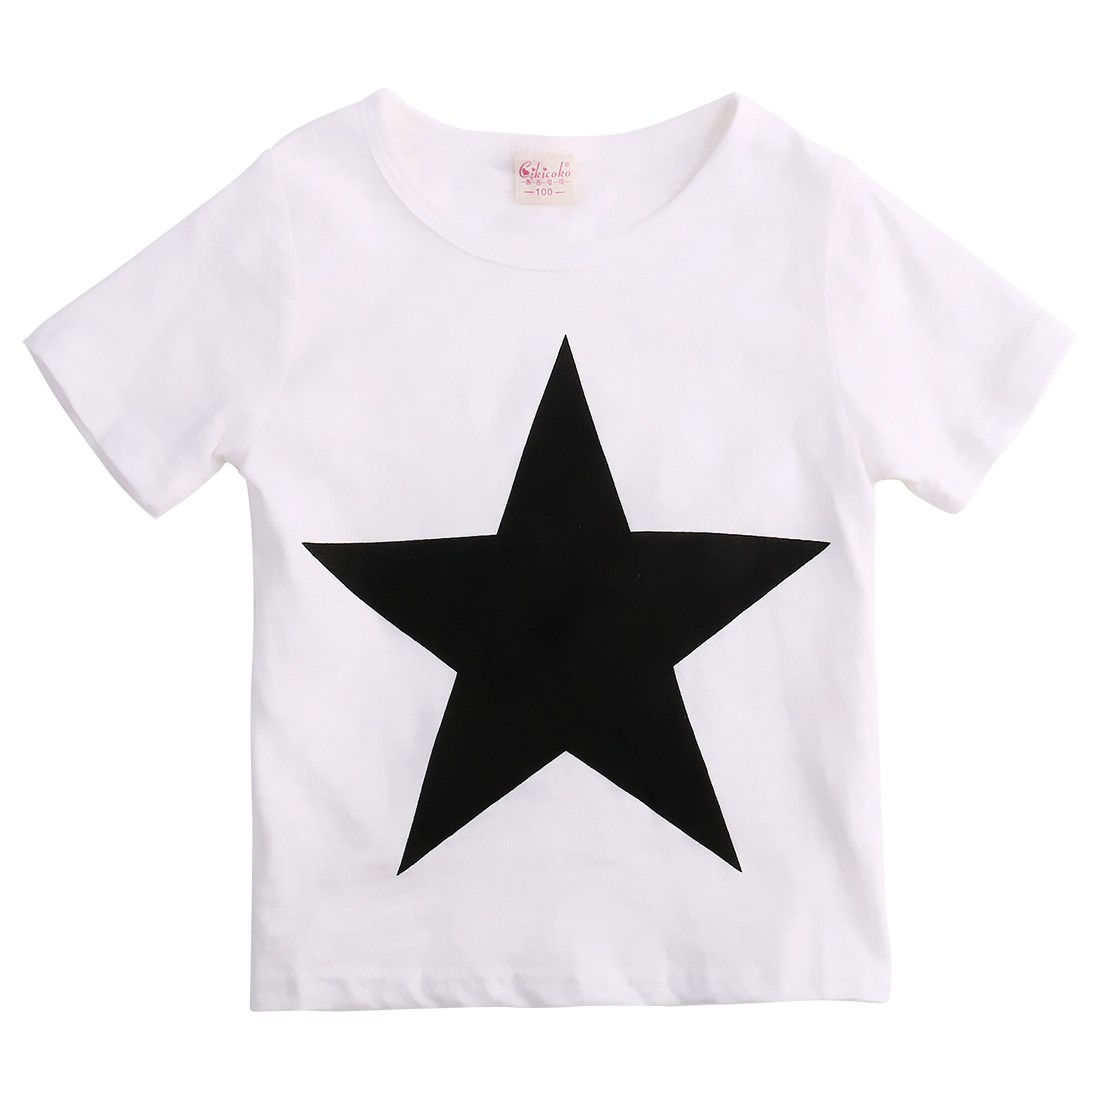 Toddler-Kids-Baby-Boys-Clothes-Star-T-shirt-Tops-Harem-Pants-2pcs-Outfits-Clothing-Set-2-7Y-2